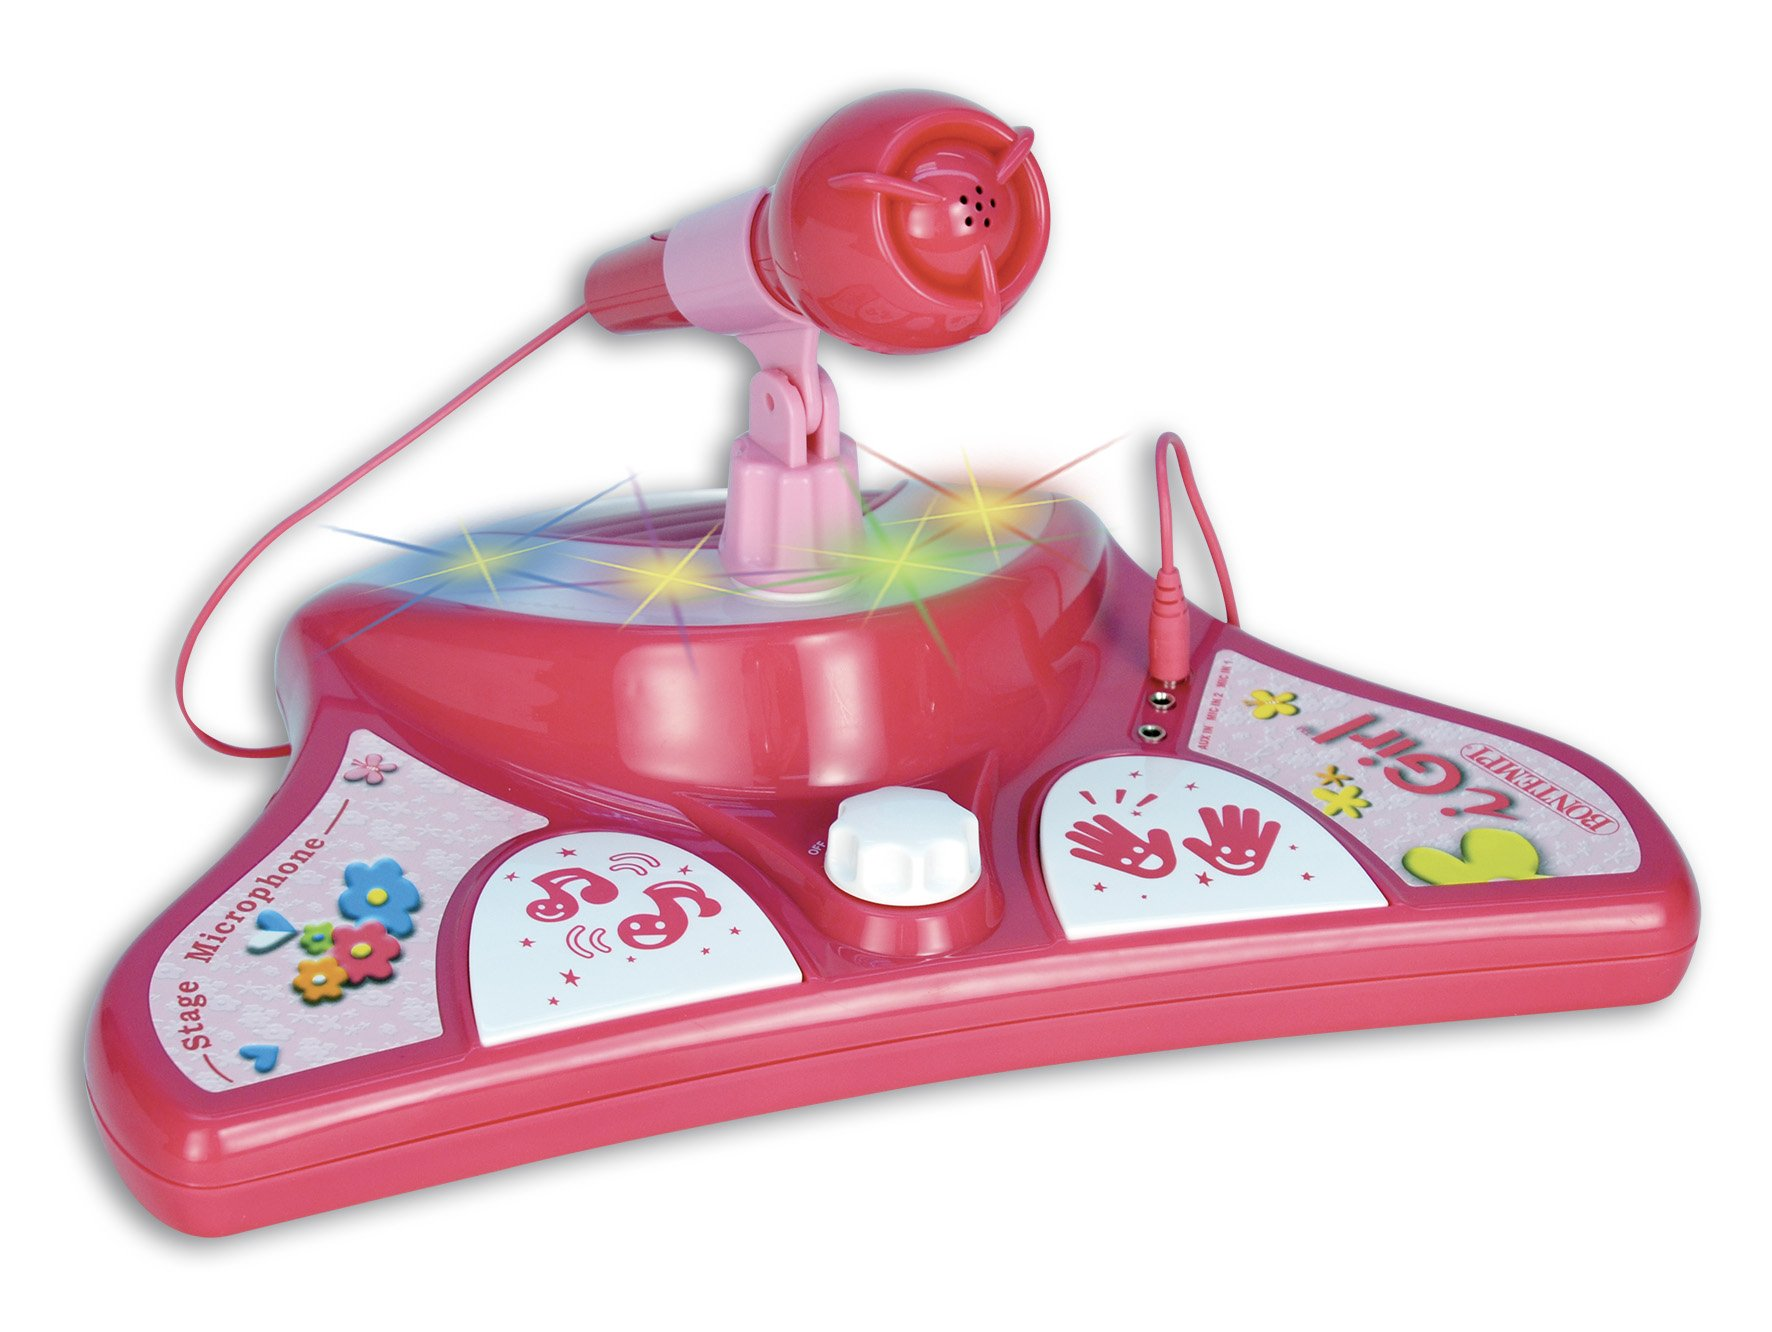 Bontempi iGirl Pink Portable Karaoke Set with Extra Microphone by Bontempi (Image #3)